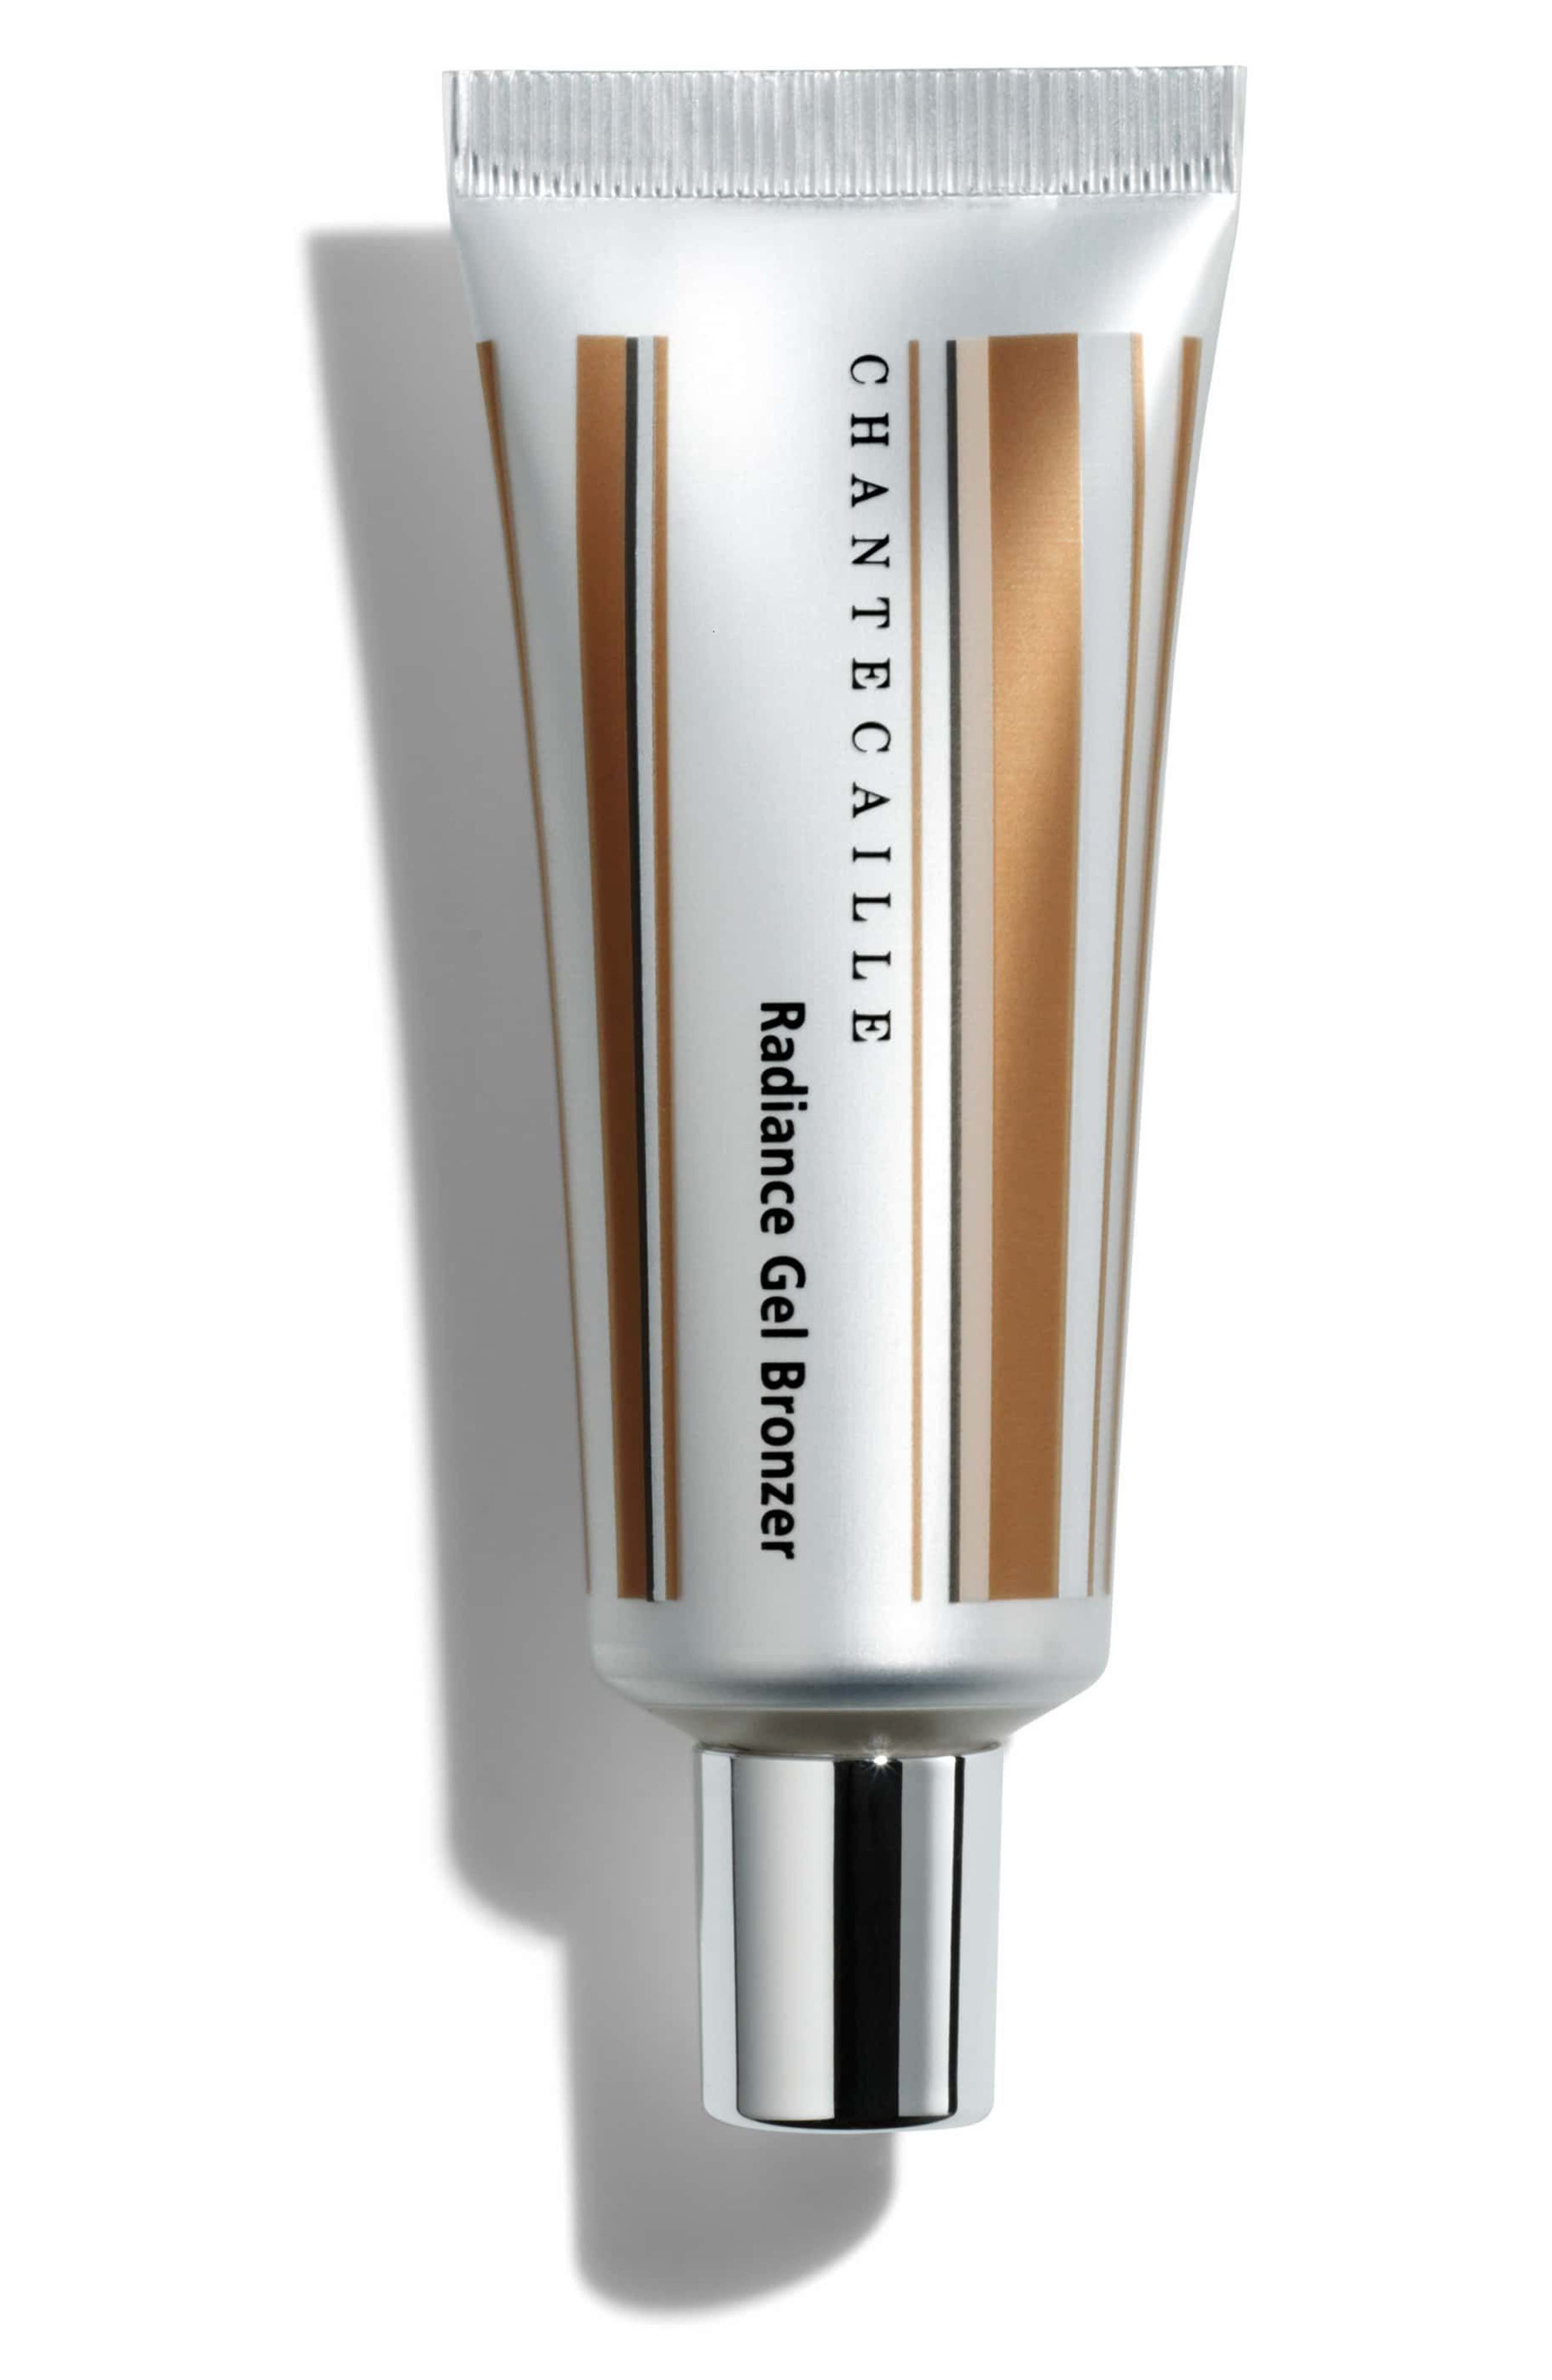 Radiance Anti-Age Gel Bronzer,                             Main thumbnail 1, color,                             No Color